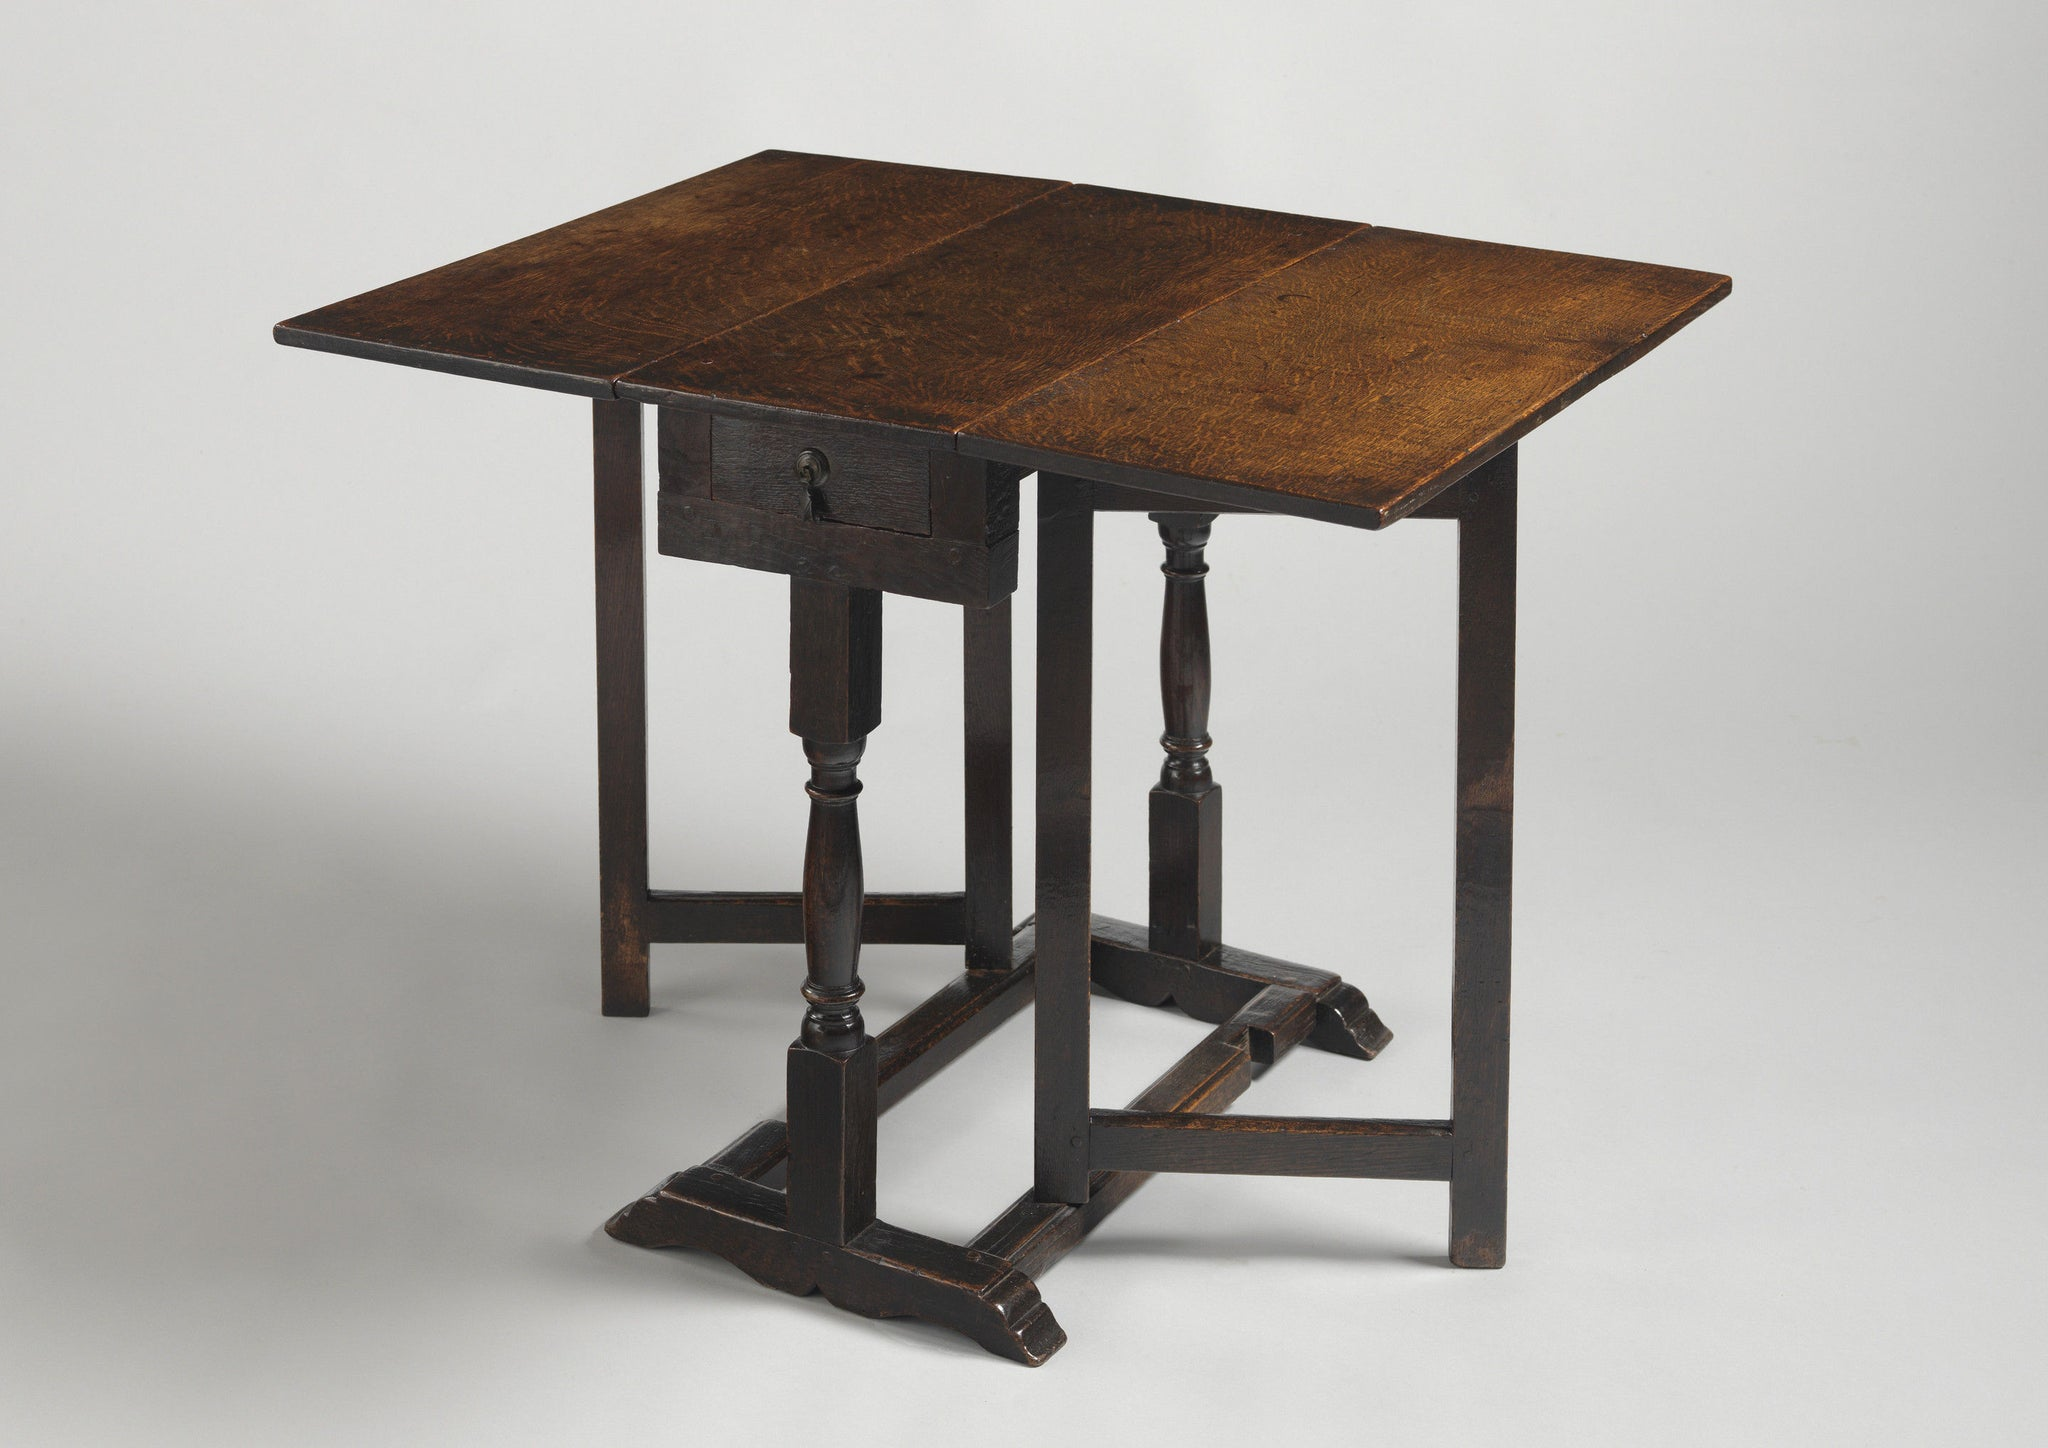 Rare Diminutive William and Mary Drop Leaf Table